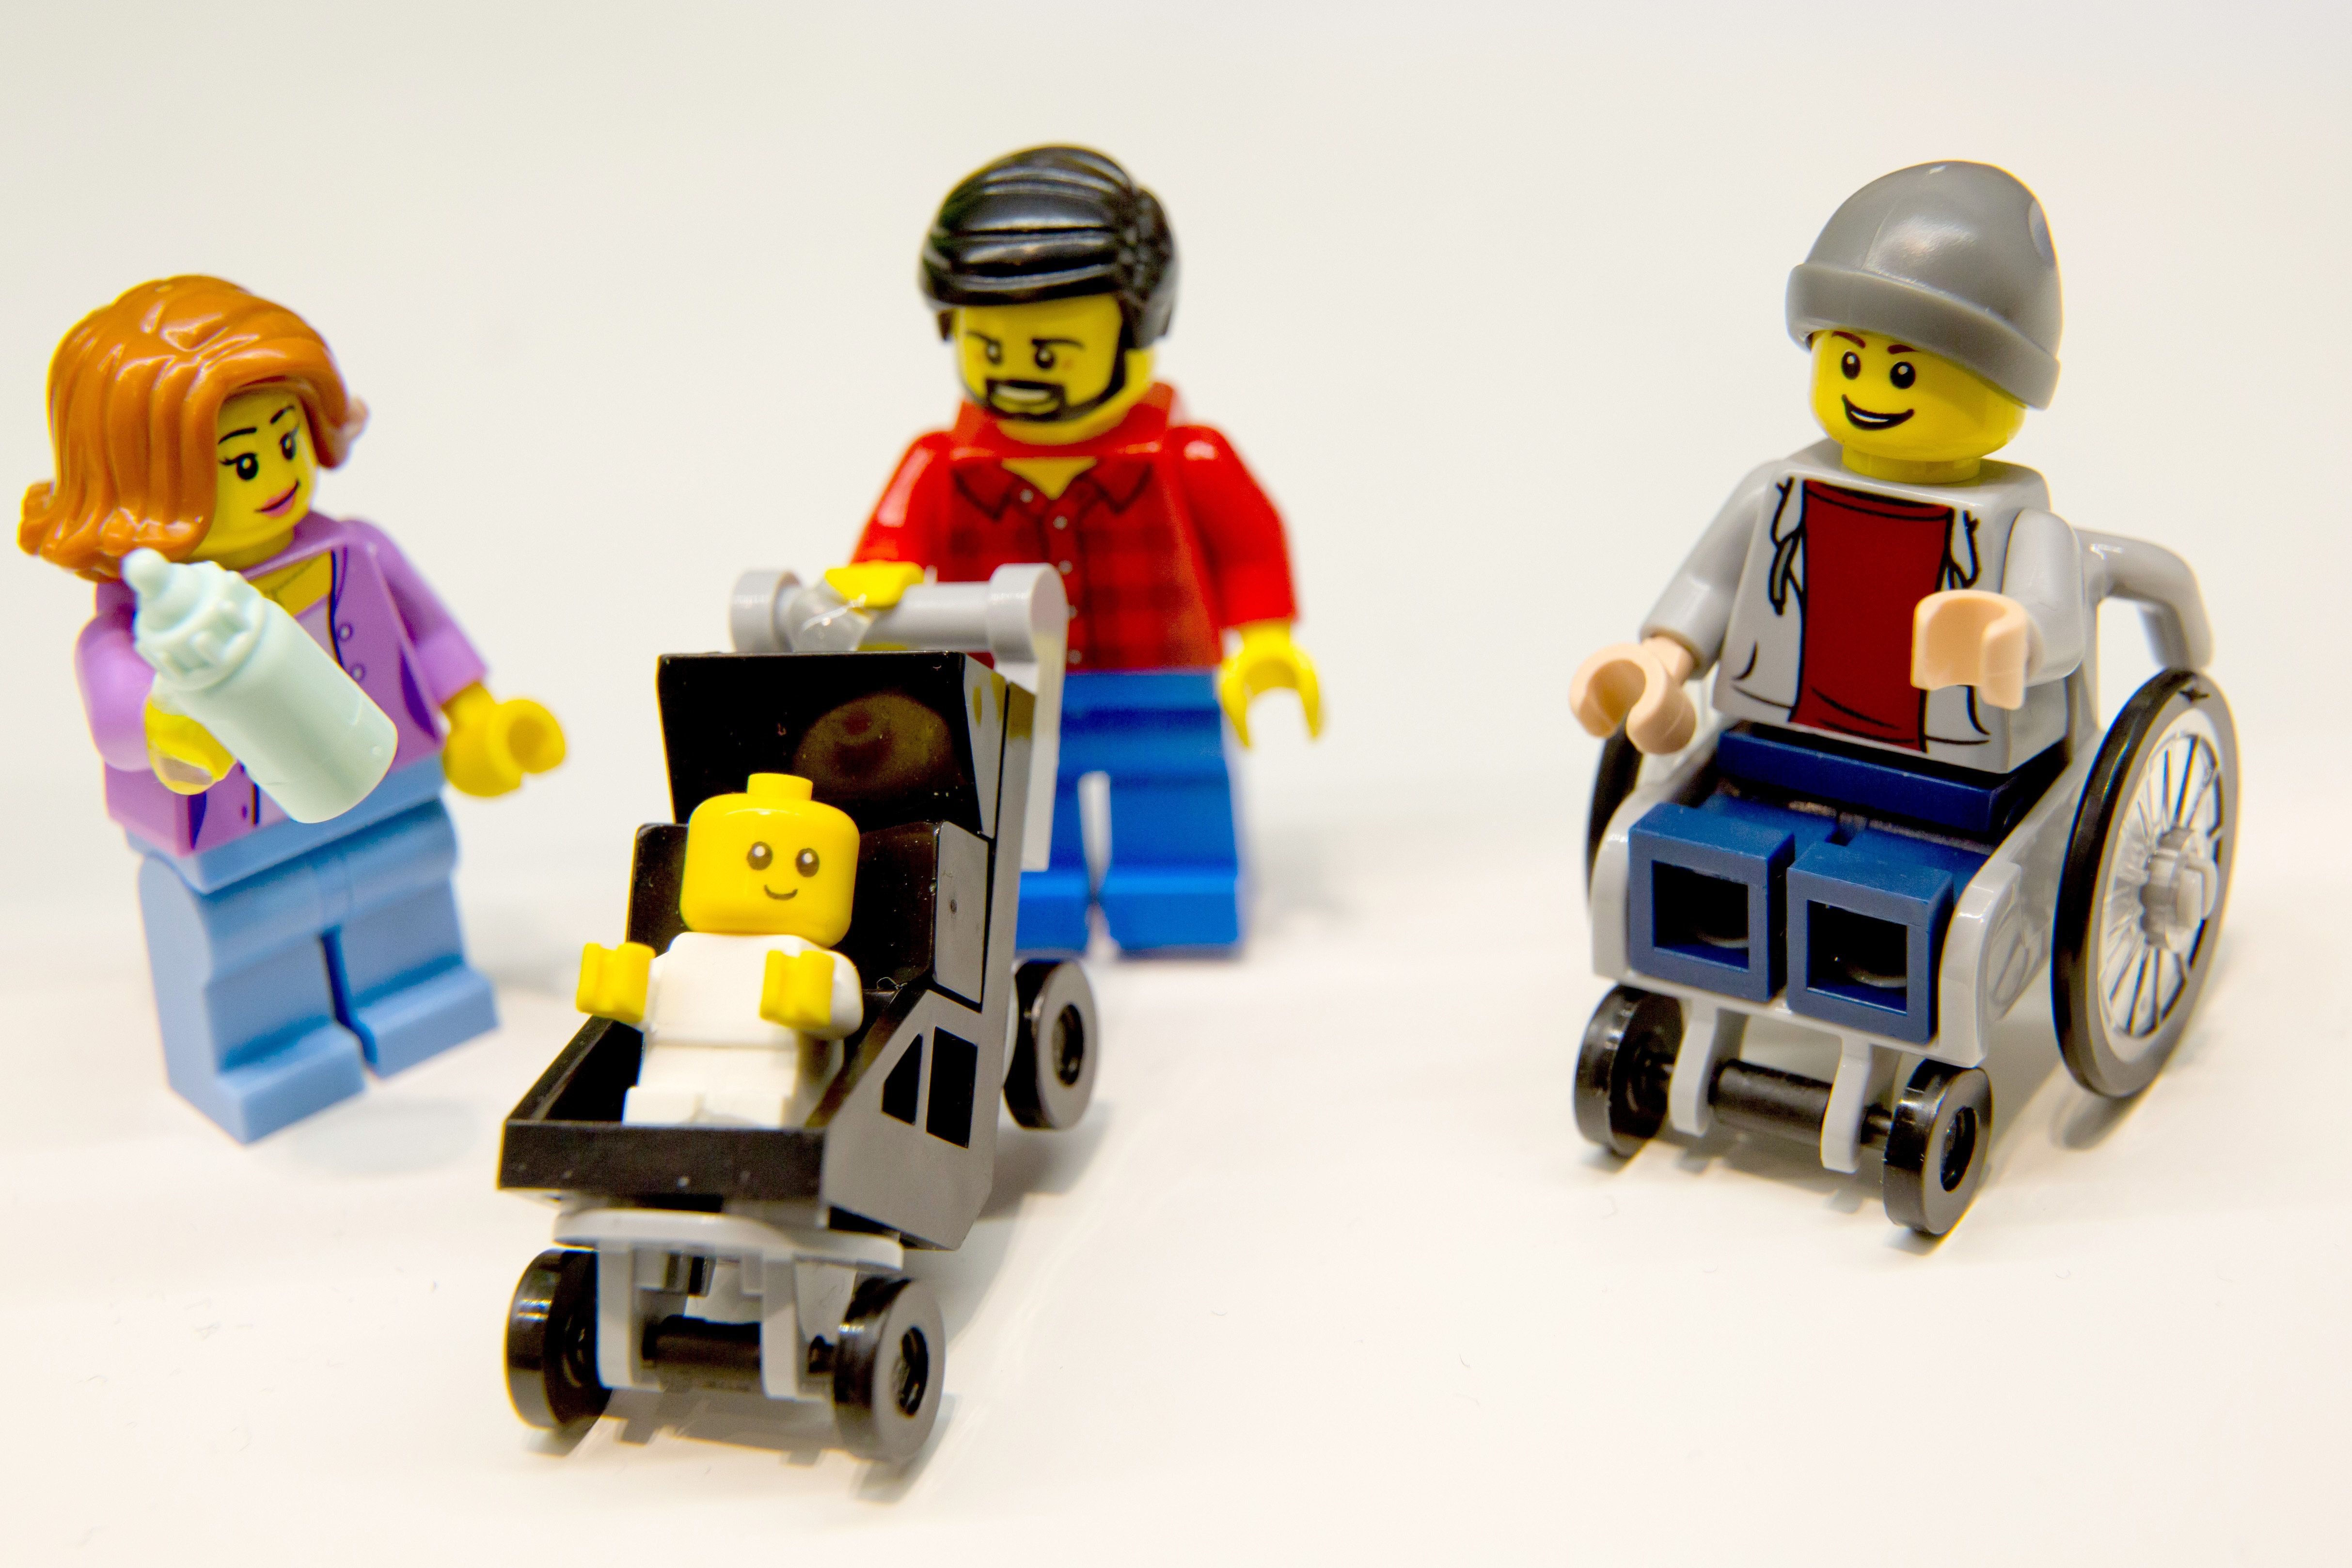 Lego figurines, including one in a wheelchair are pictured at the Lego booth on January 28, 2016 in Nuernberg during the 67th International Toy Fair.  / AFP / dpa / Daniel Karmann / Germany OUT        (Photo credit should read DANIEL KARMANN/AFP/Getty Images)